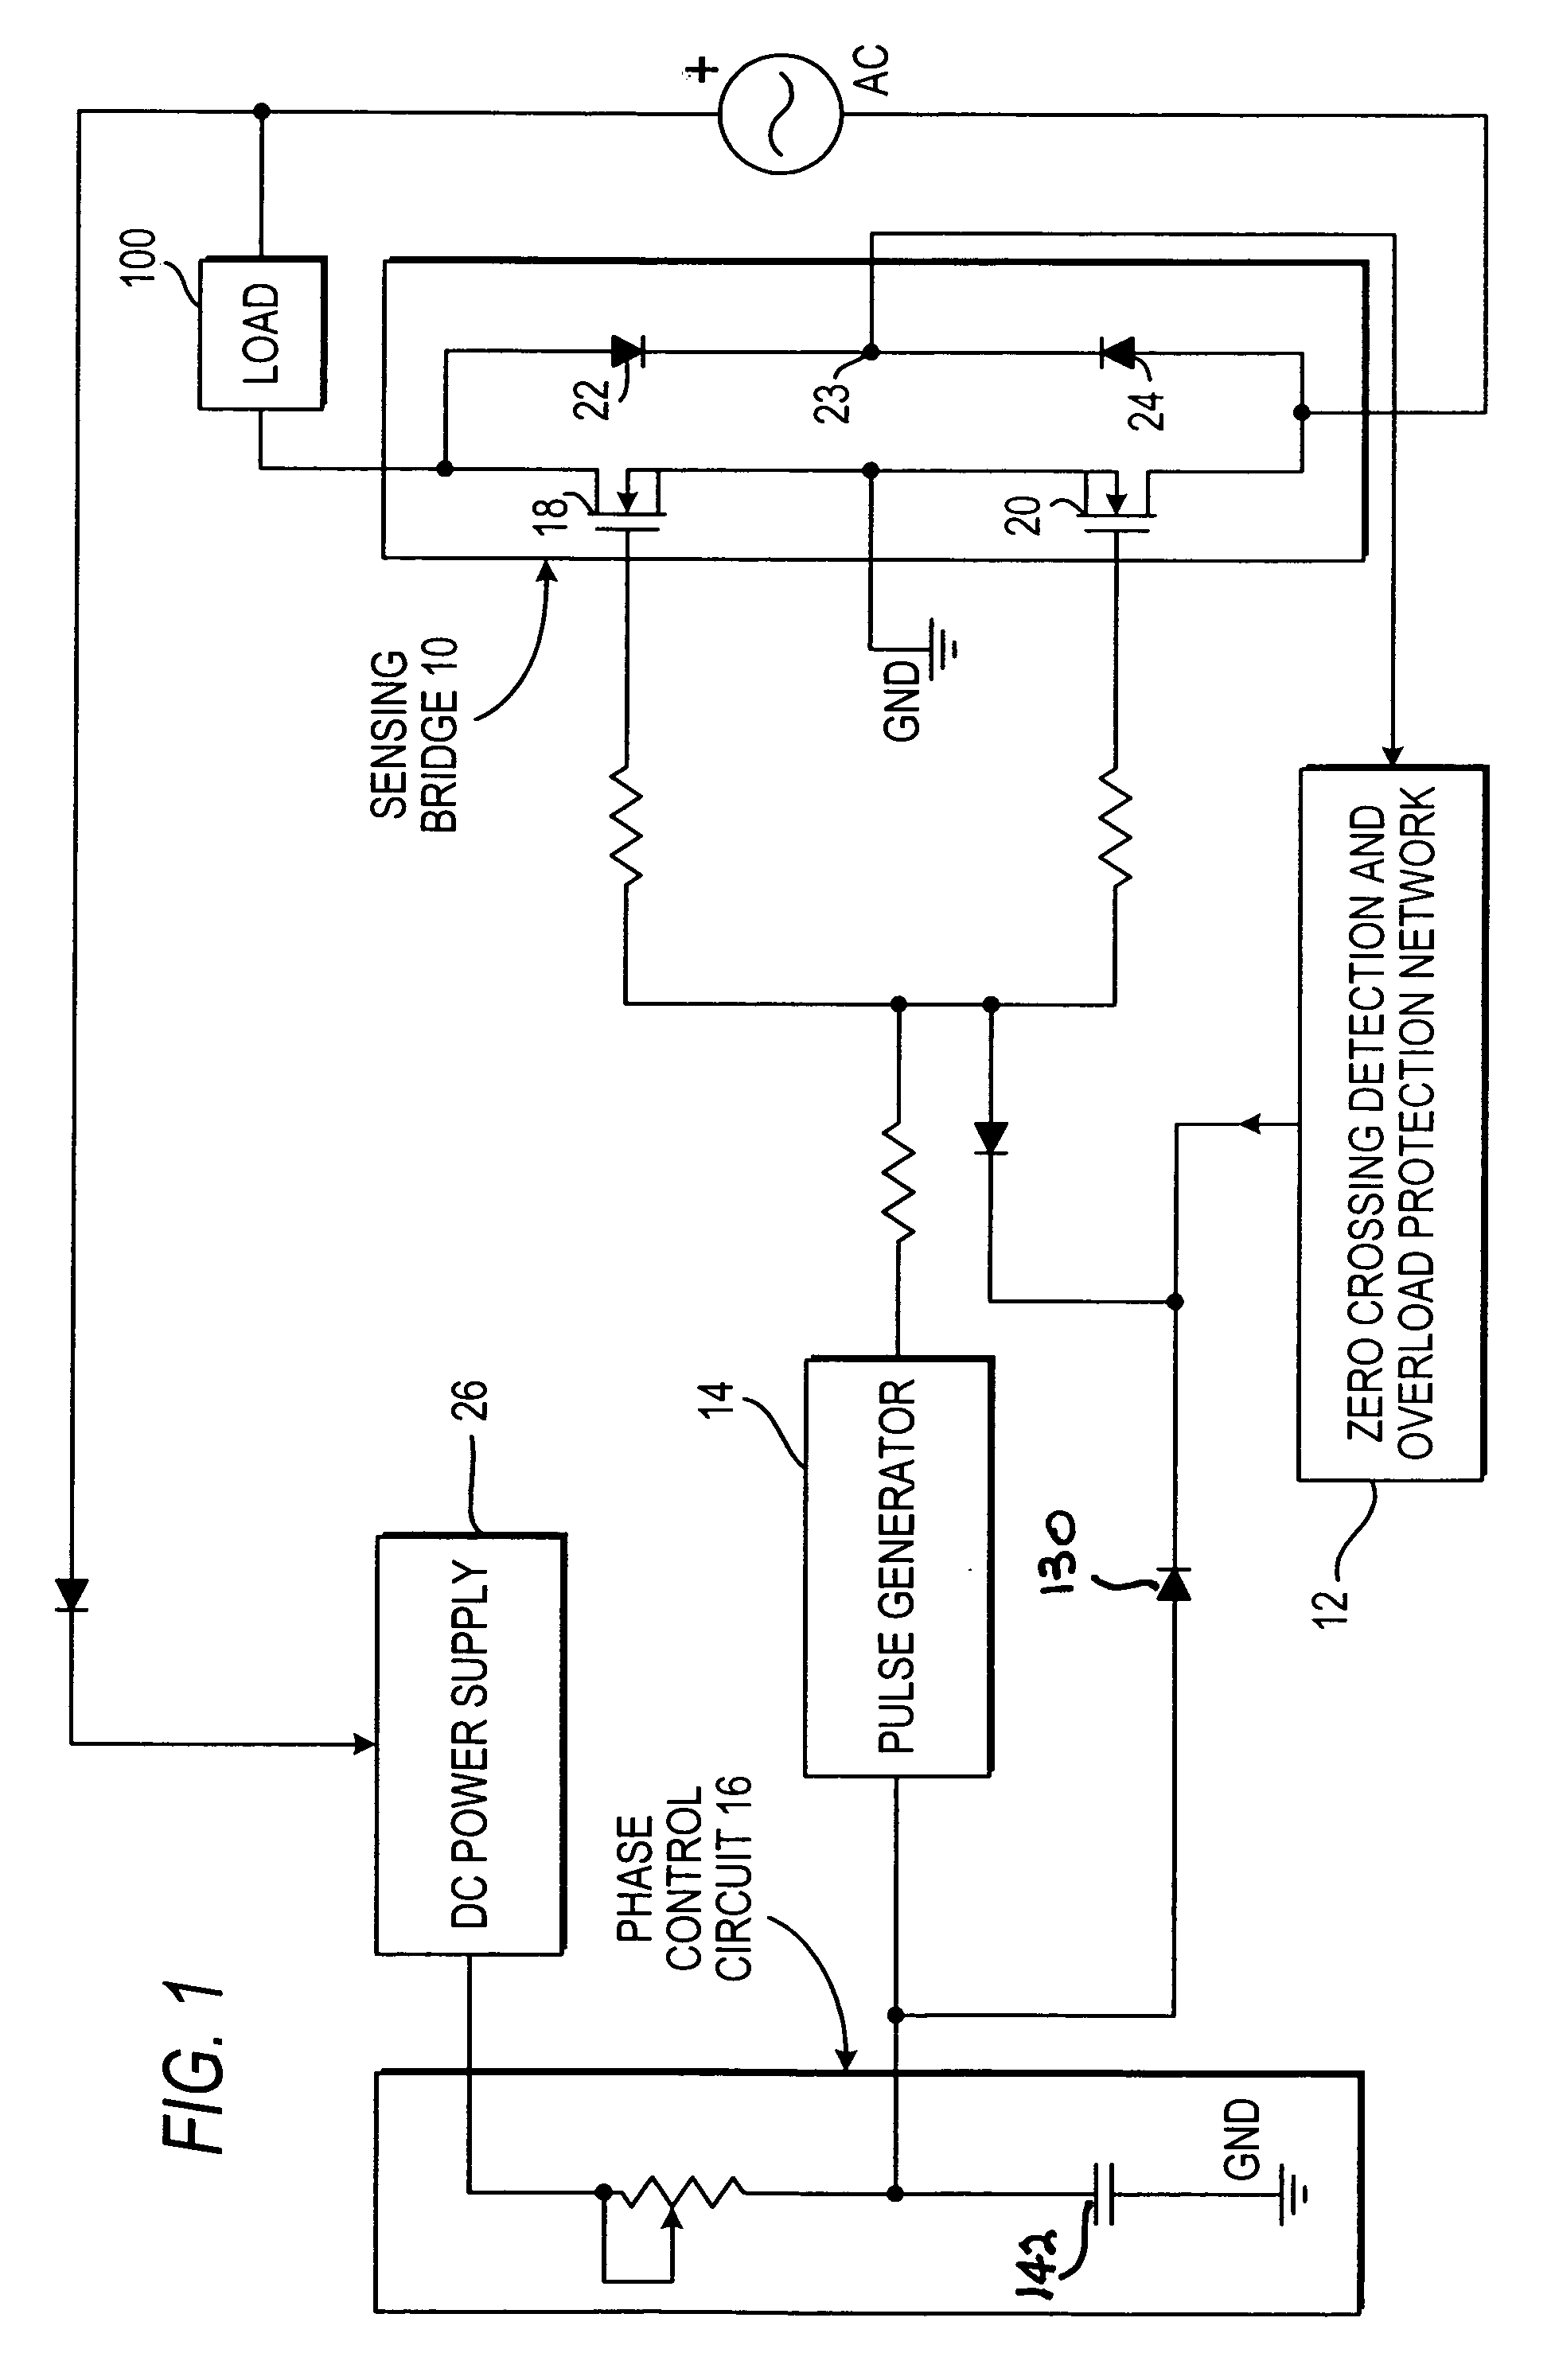 Alternating Current Sensing Circuit Wiring Diagram Master Blogs Currentsensorcircuitjpg Patent Us7242563 Reverse Phase Control Power Switching Ac Switch